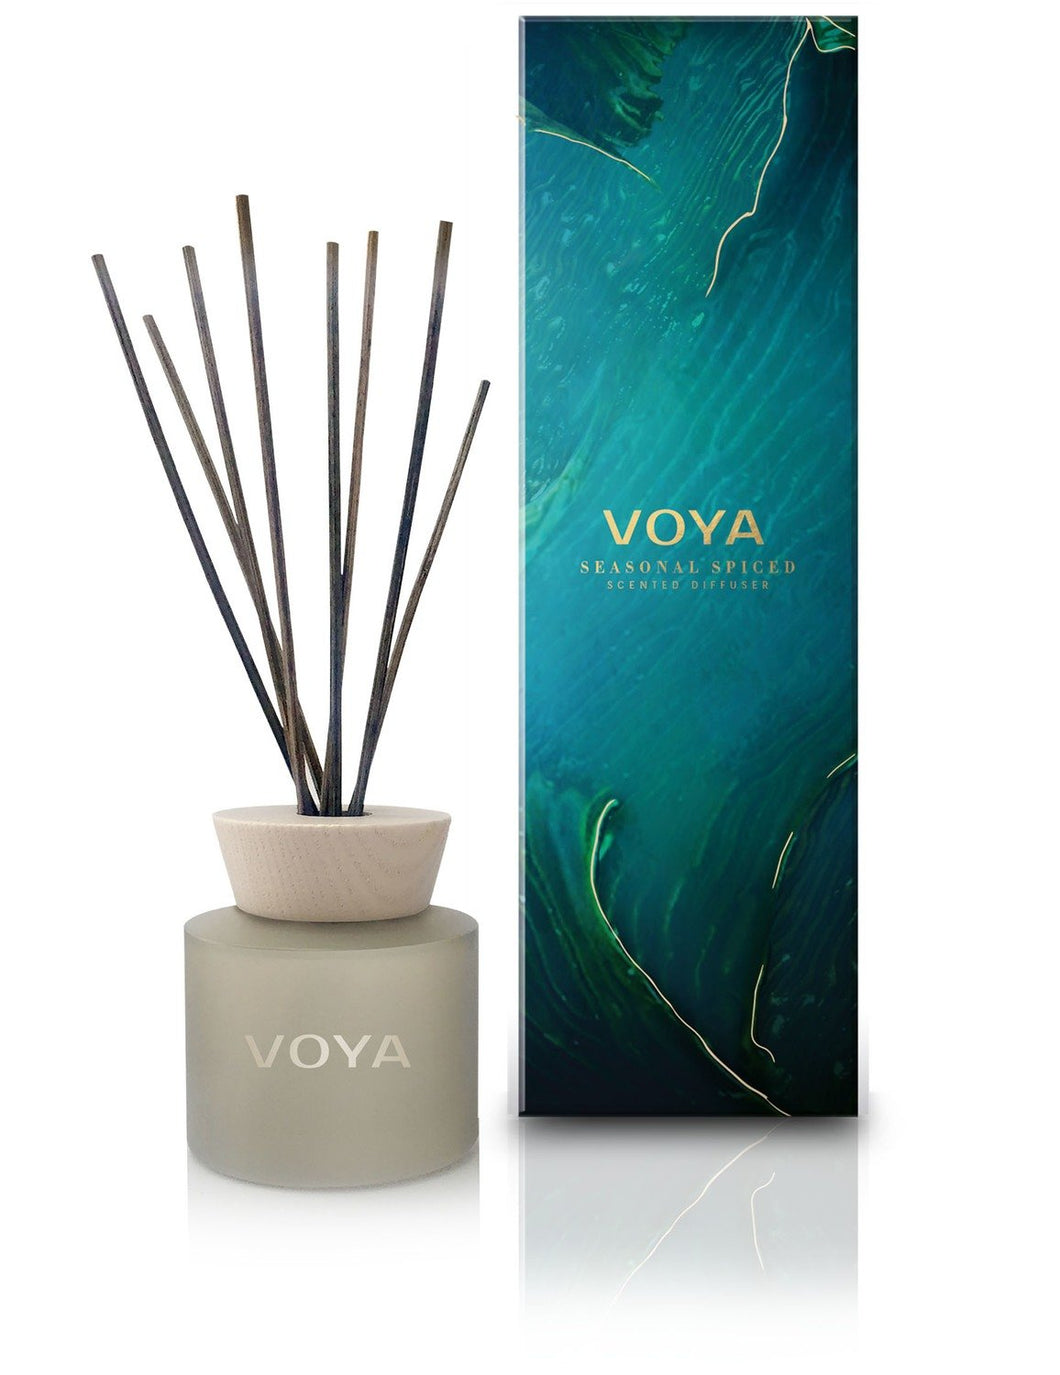 Voya Oh So Scented Reed Diffuser - Seasonal Scent